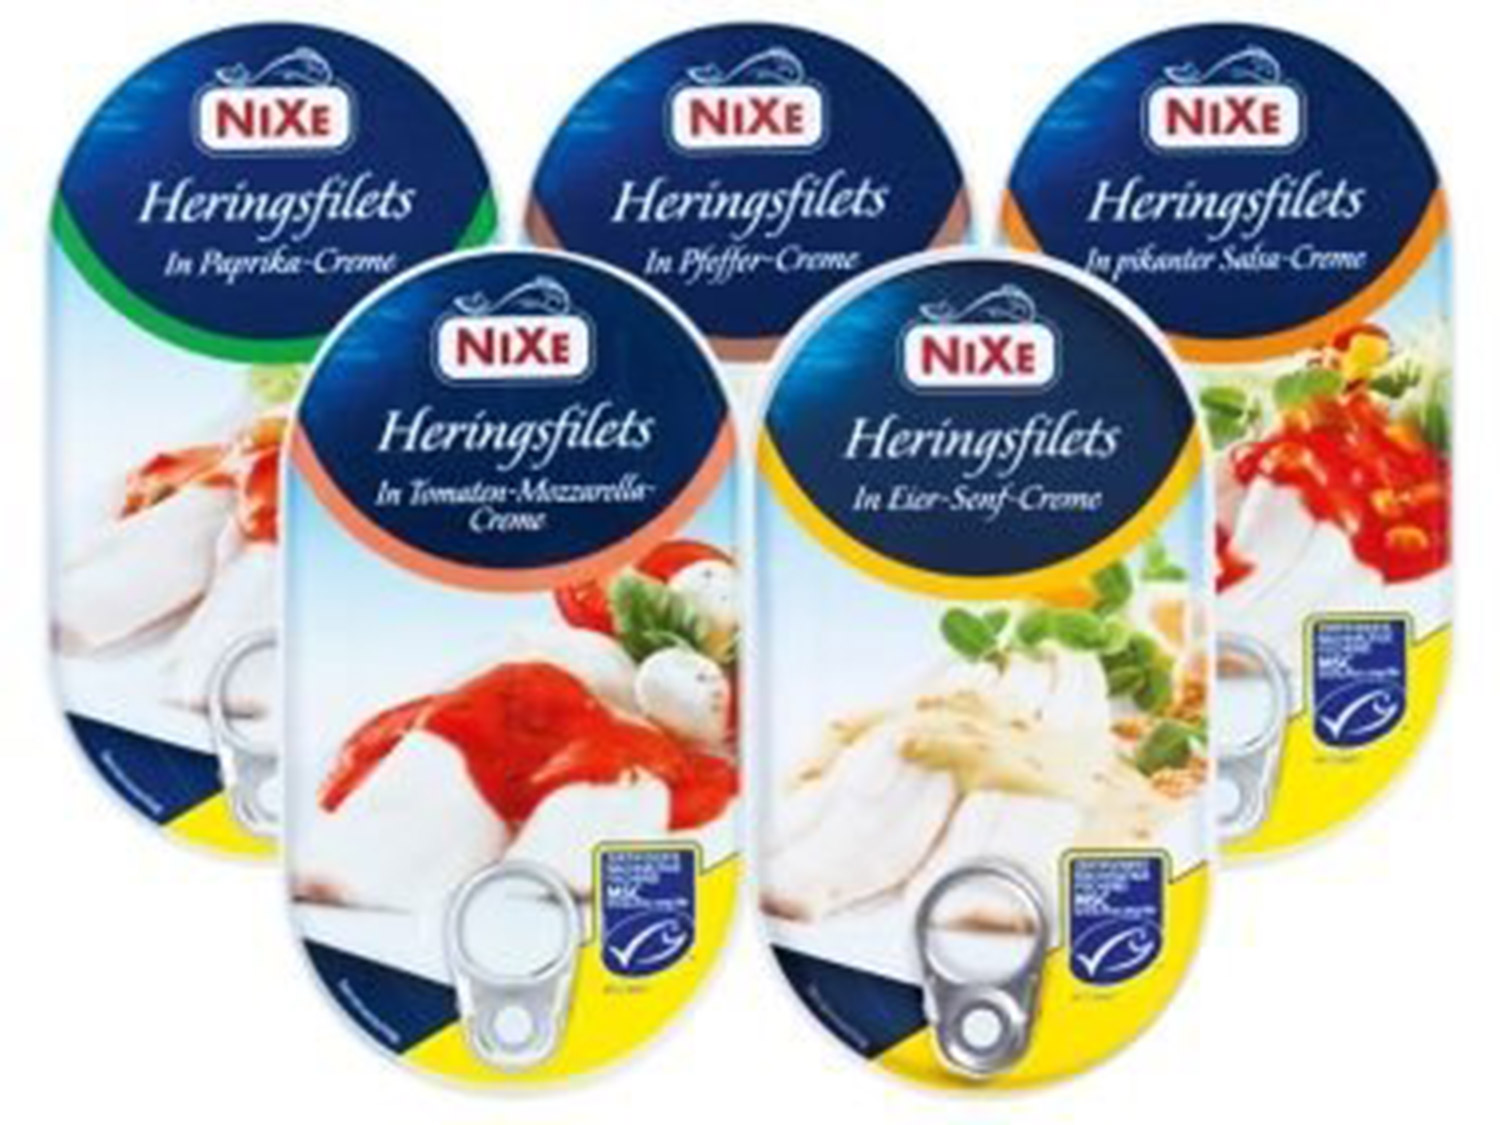 Lidl recalls tinned fish because labels don't warn cans may contain fish